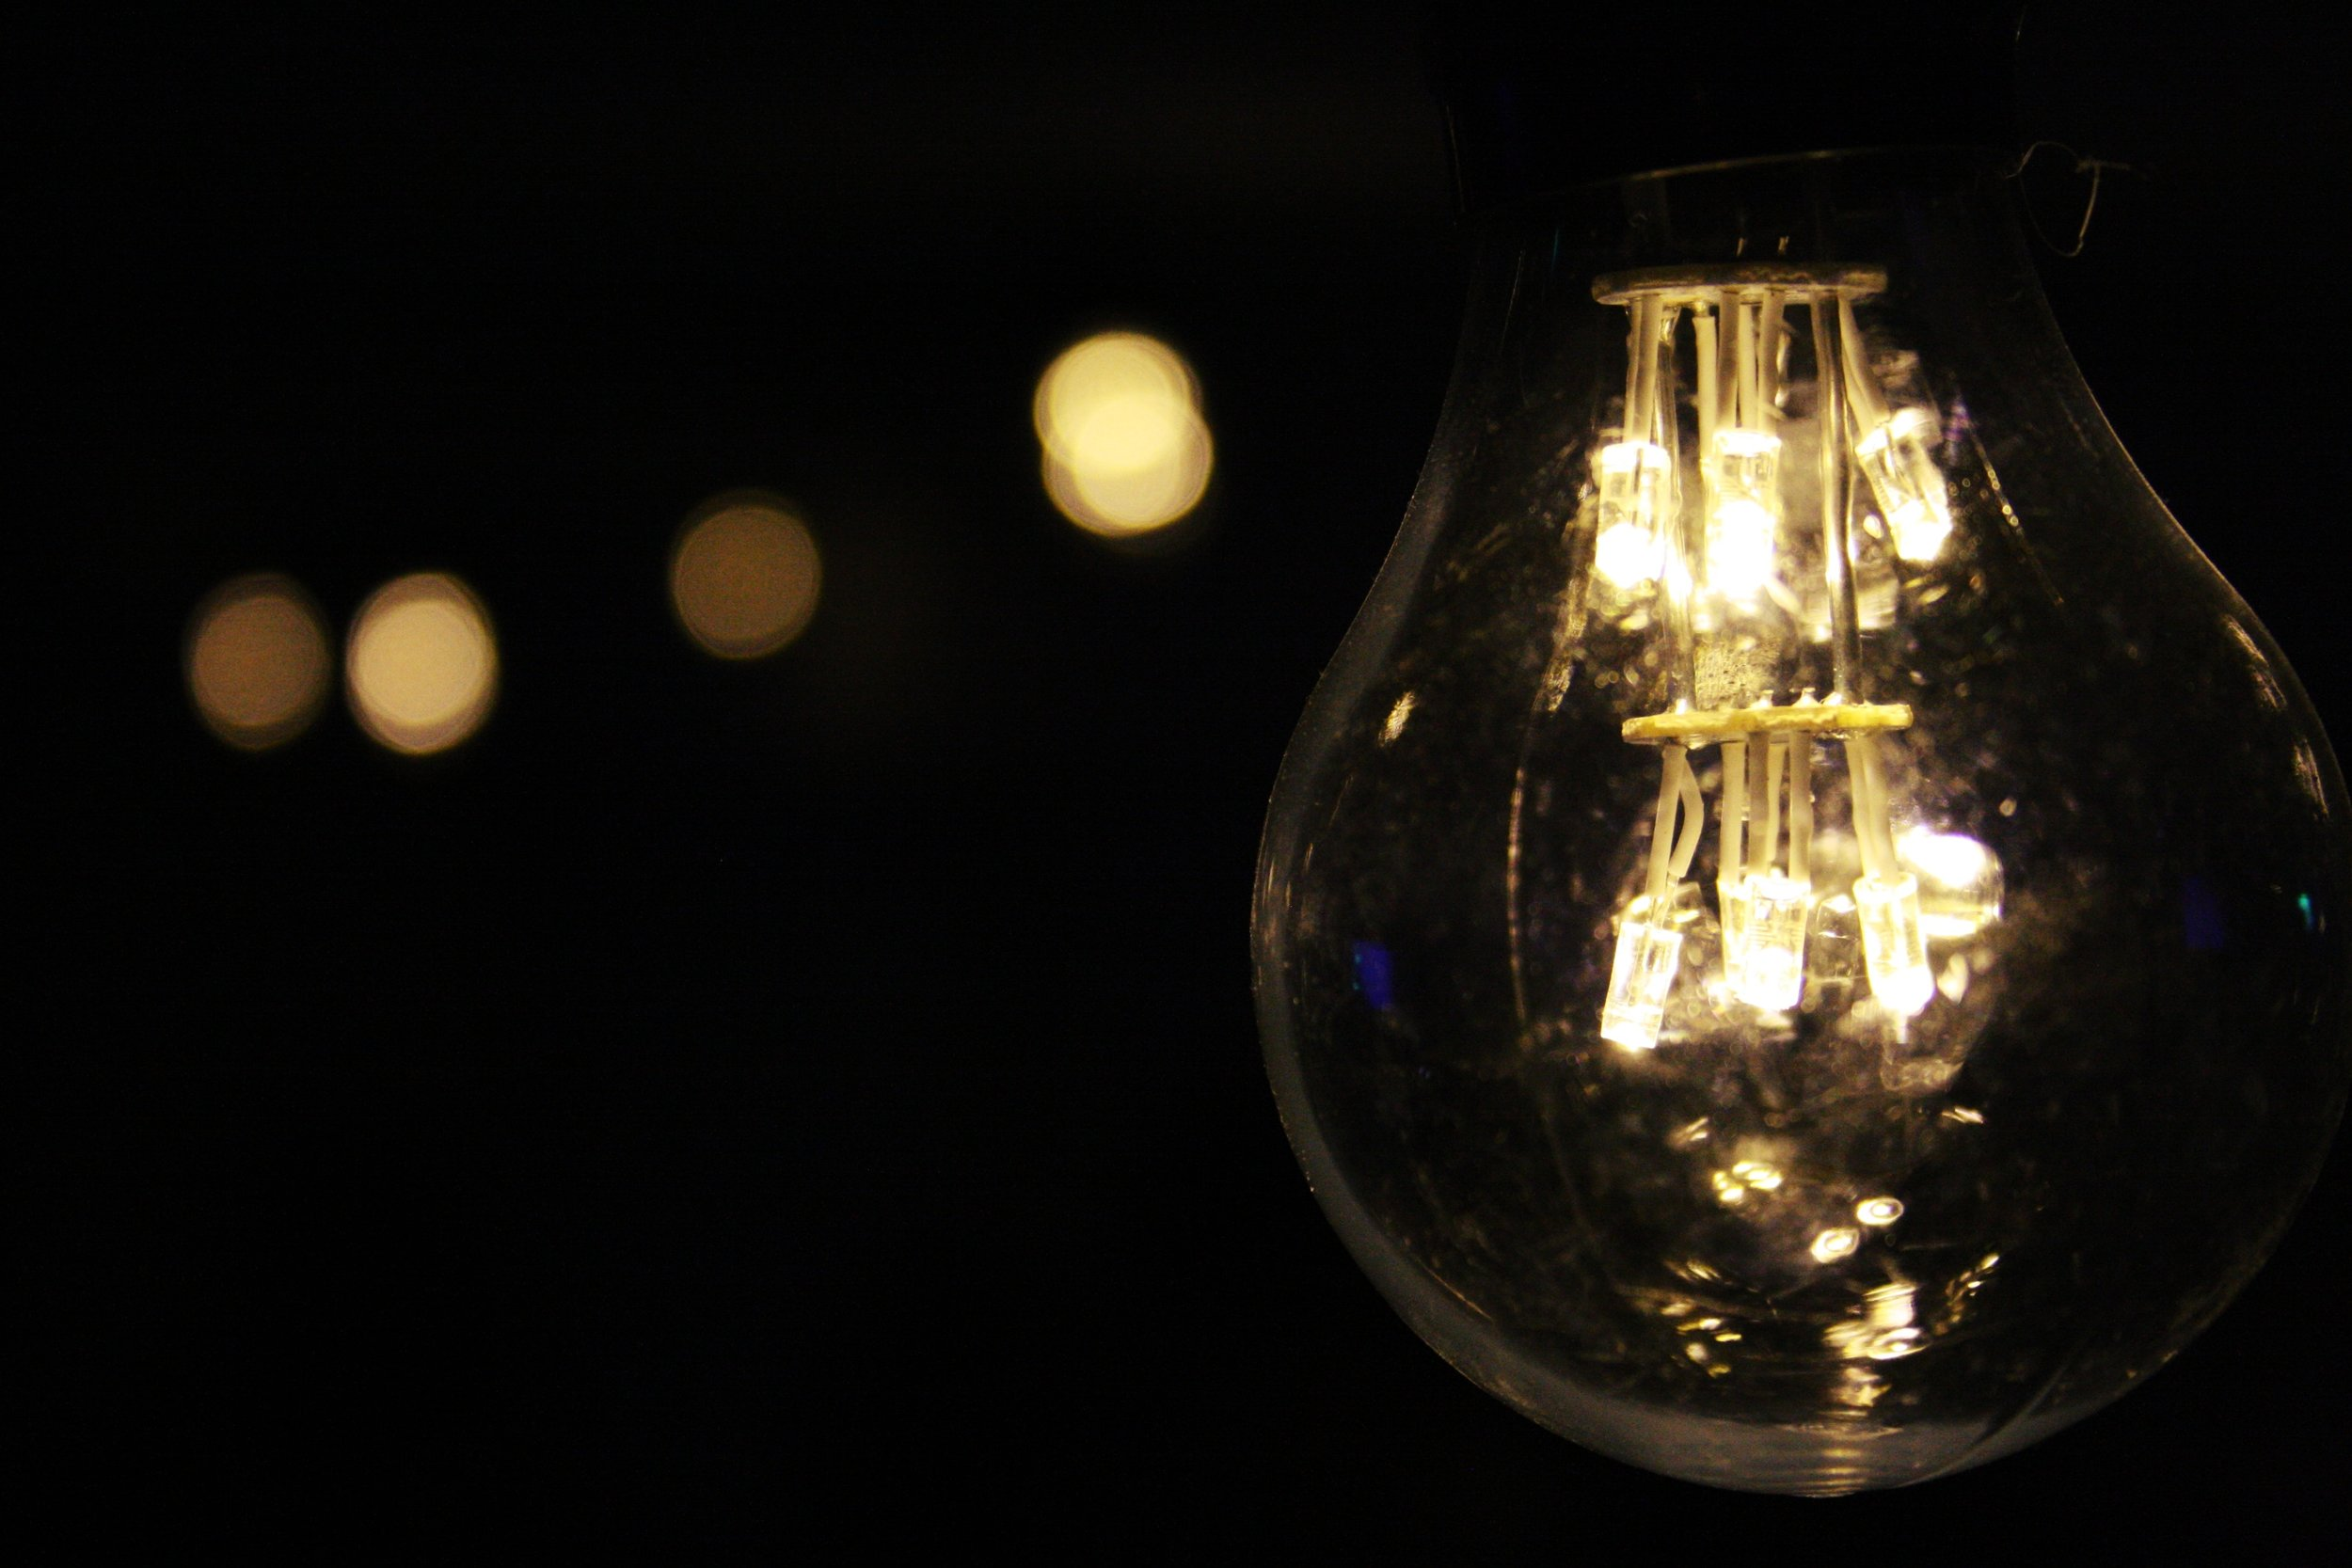 black-background-bulb-close-up-52910.jpg